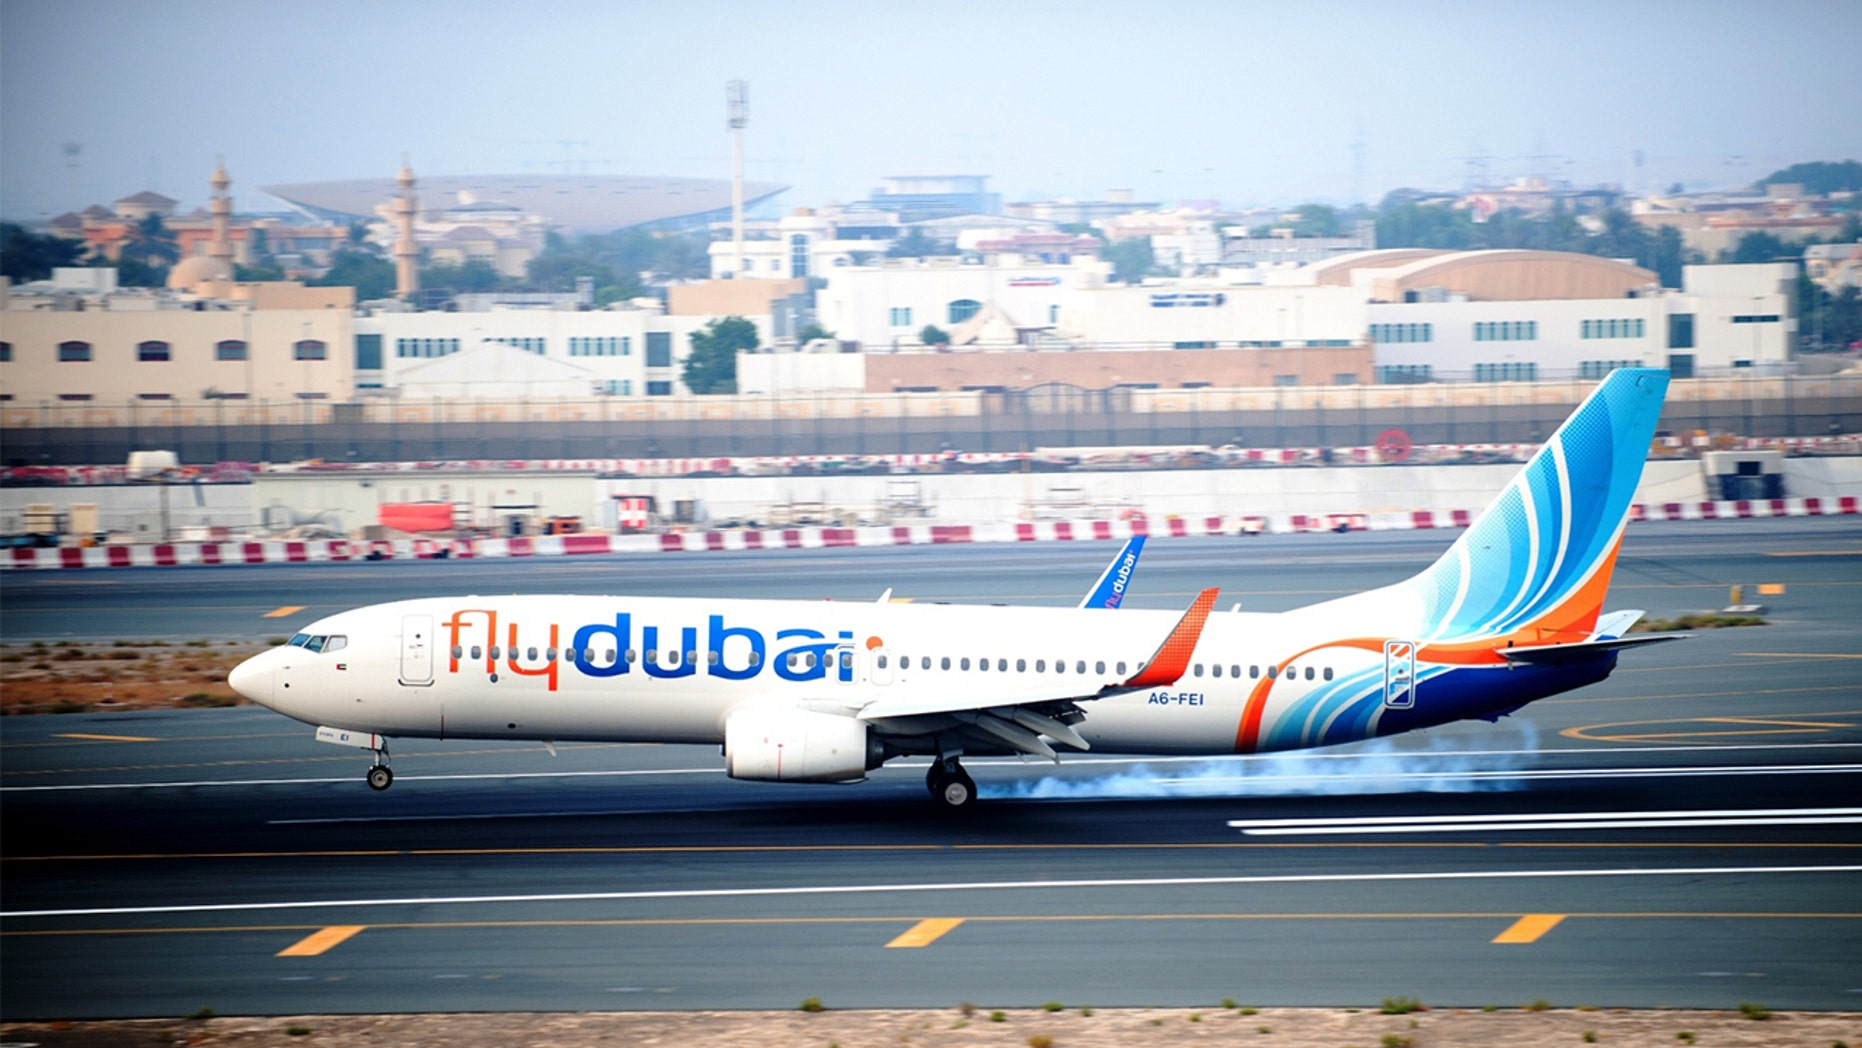 A flydubai pilot caused a significant delay after testing over the legal blood alcohol limit.